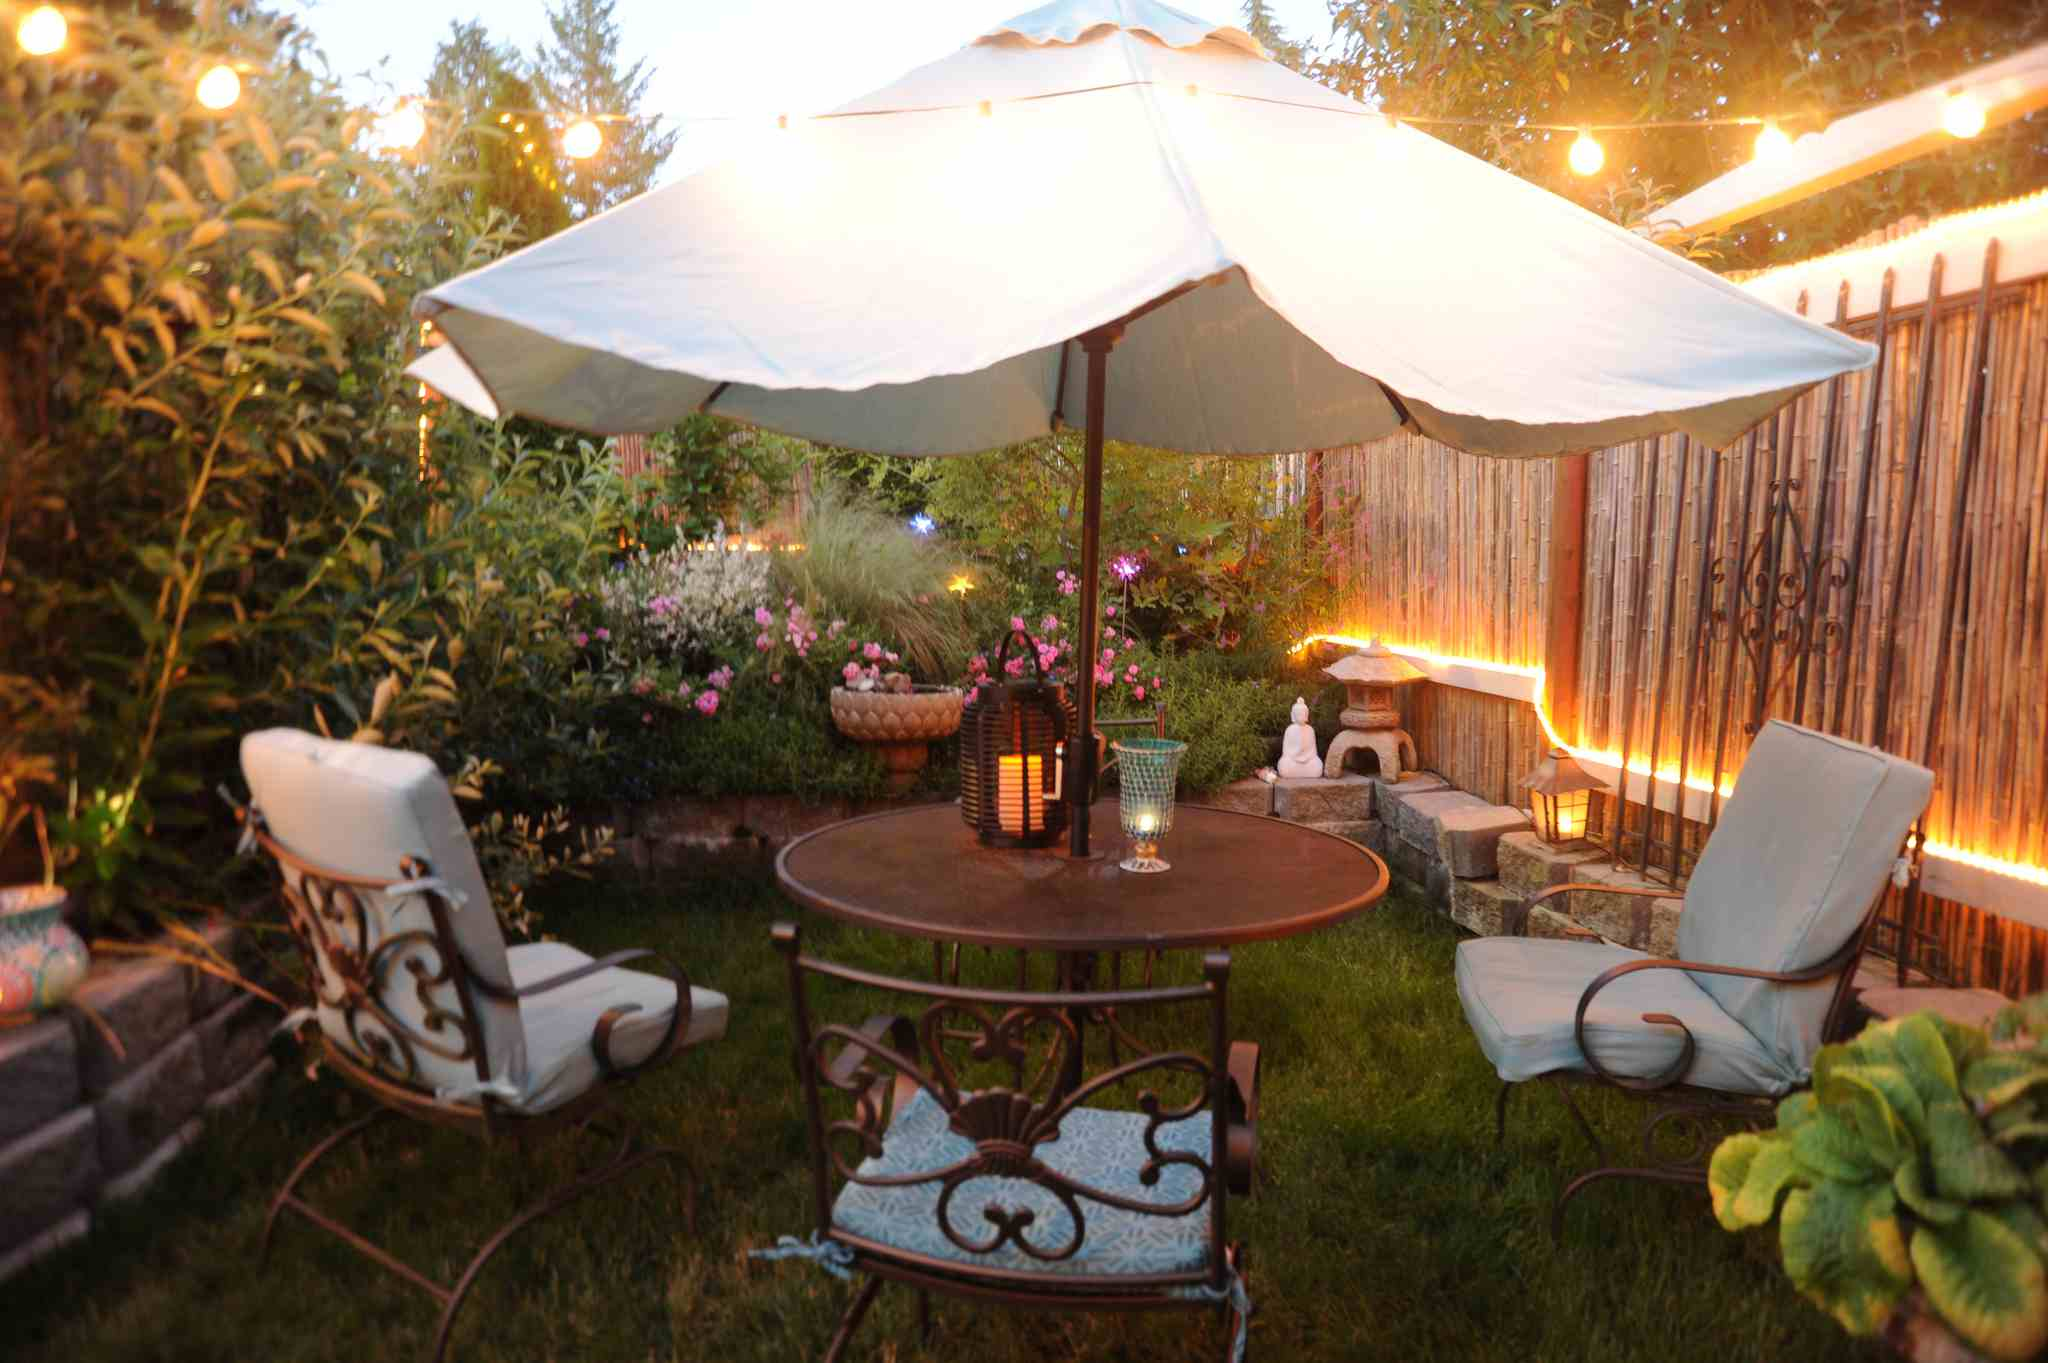 Stupendous 15 Shade Ideas For Your Outdoor Space Evergreenethics Interior Chair Design Evergreenethicsorg